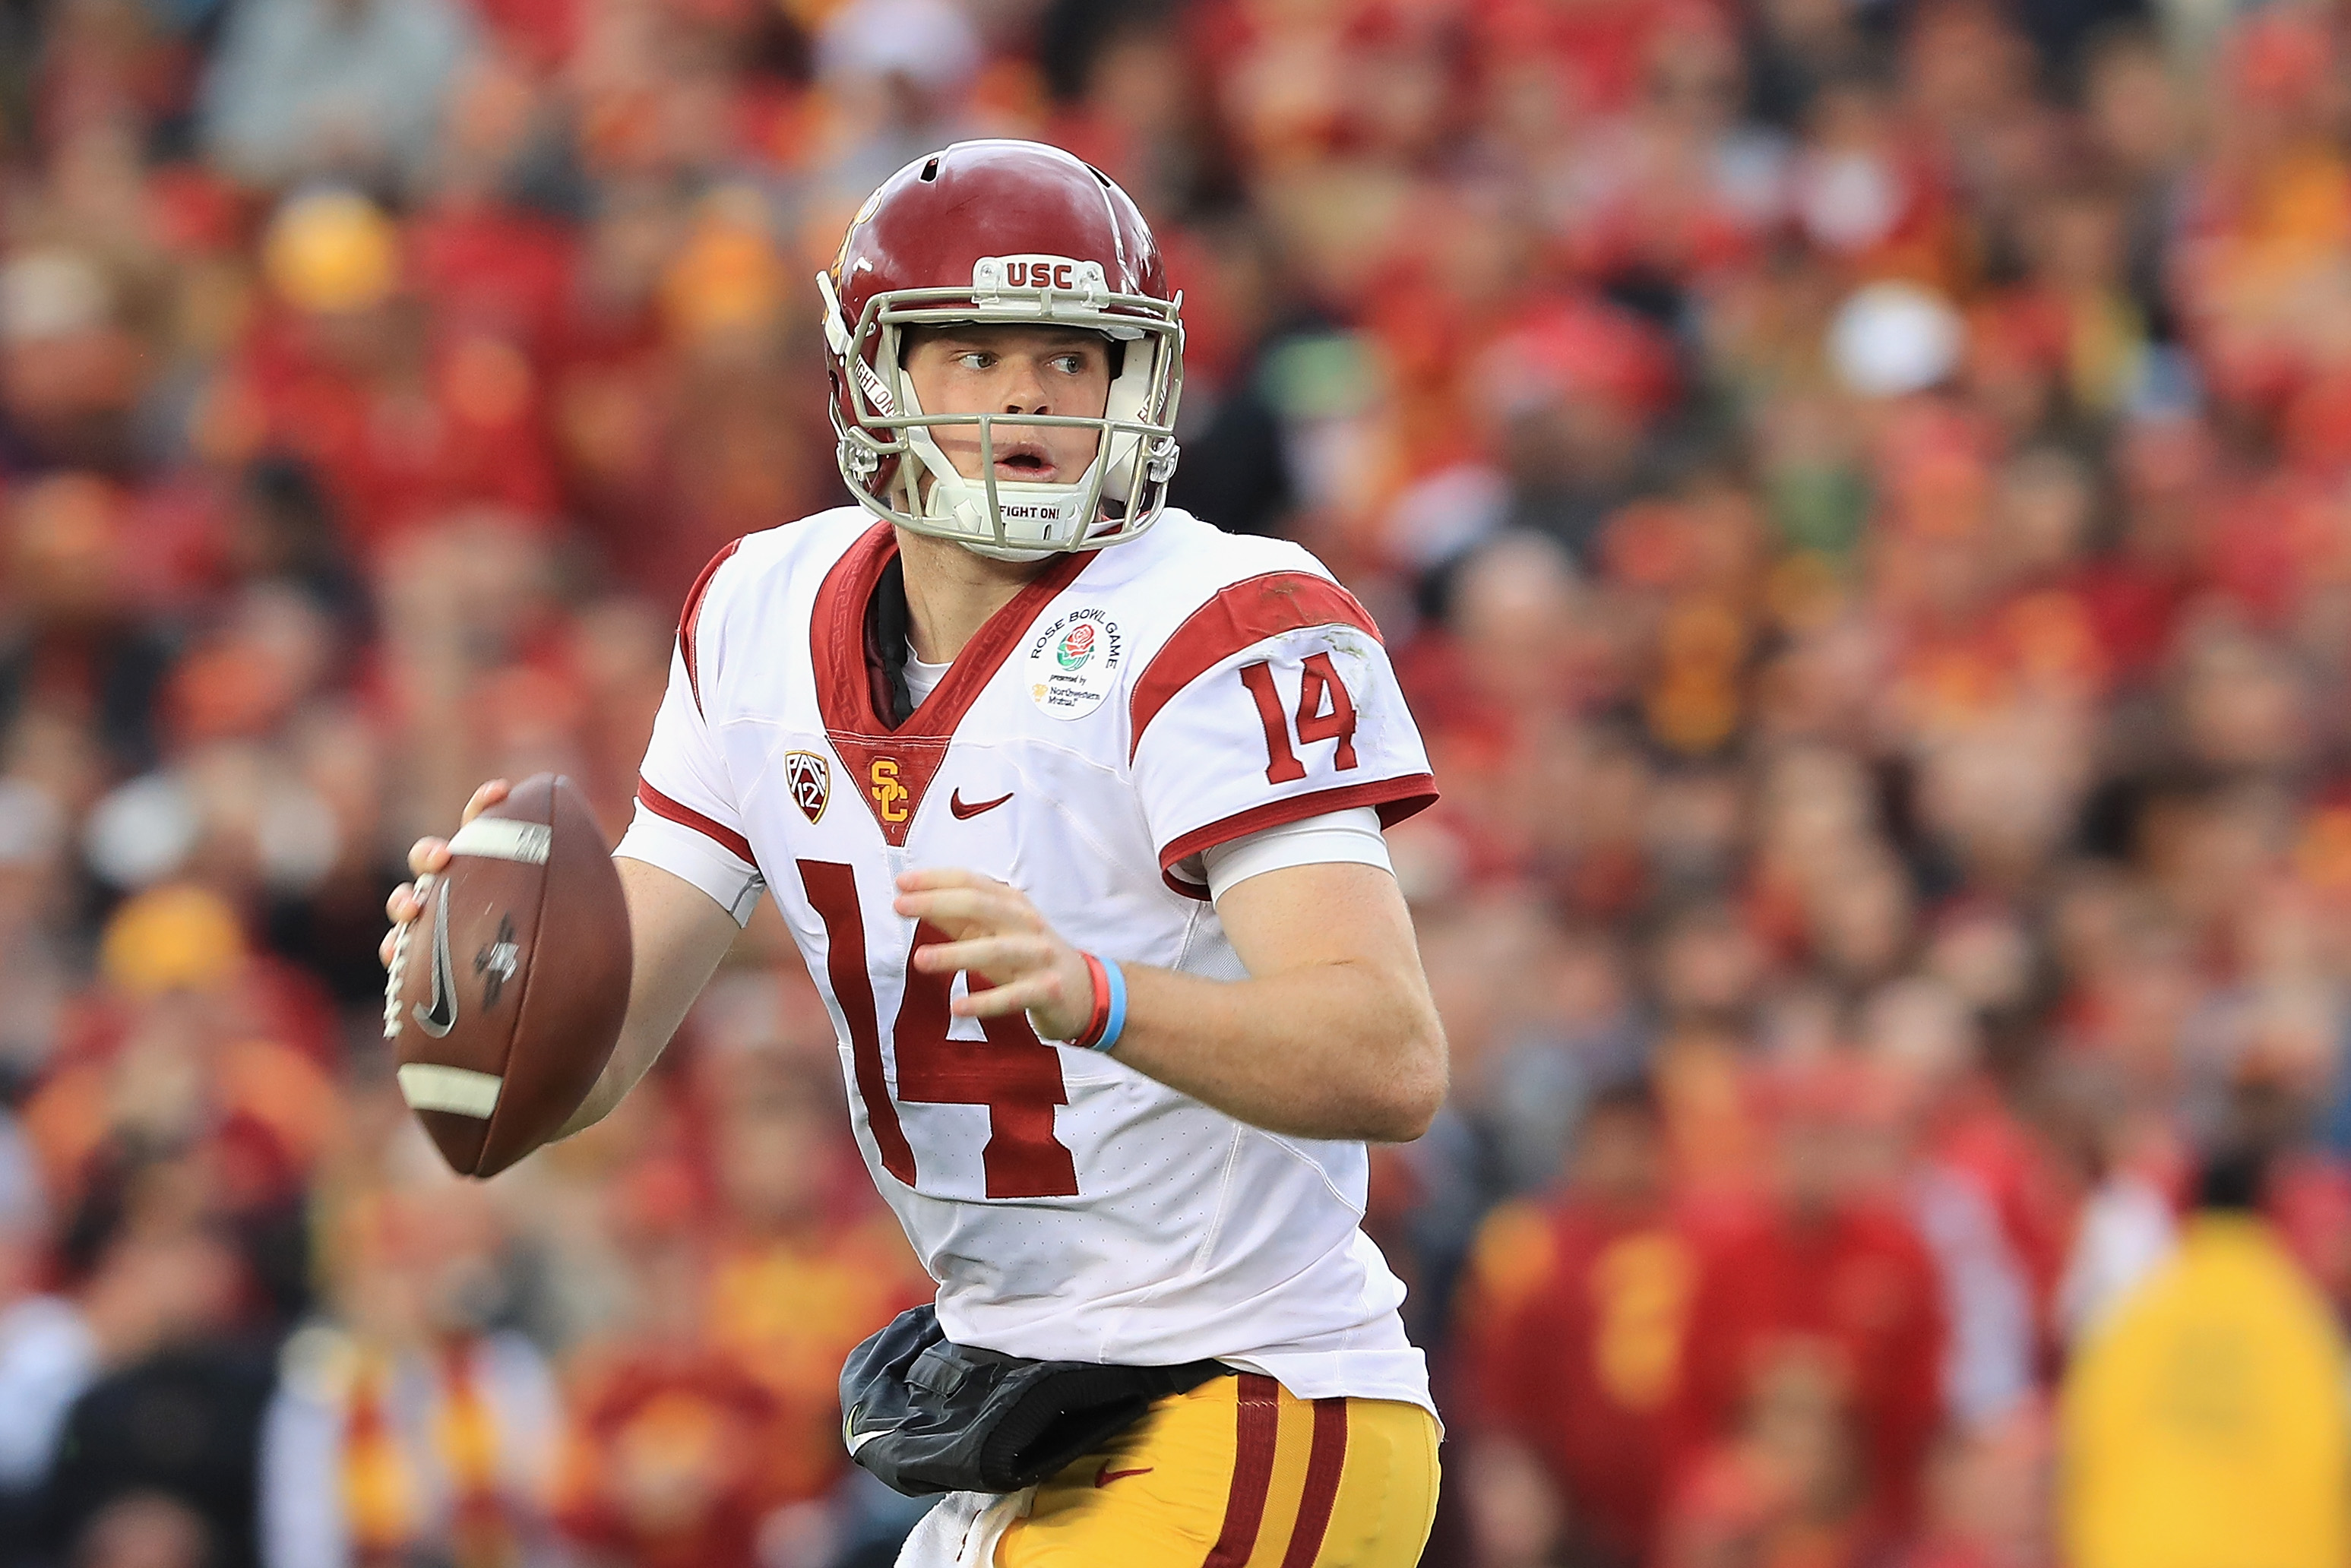 Southern California quarterback Sam Darnold is expected to be one of the top picks in the 2018 NFL Draft. (Getty Images)